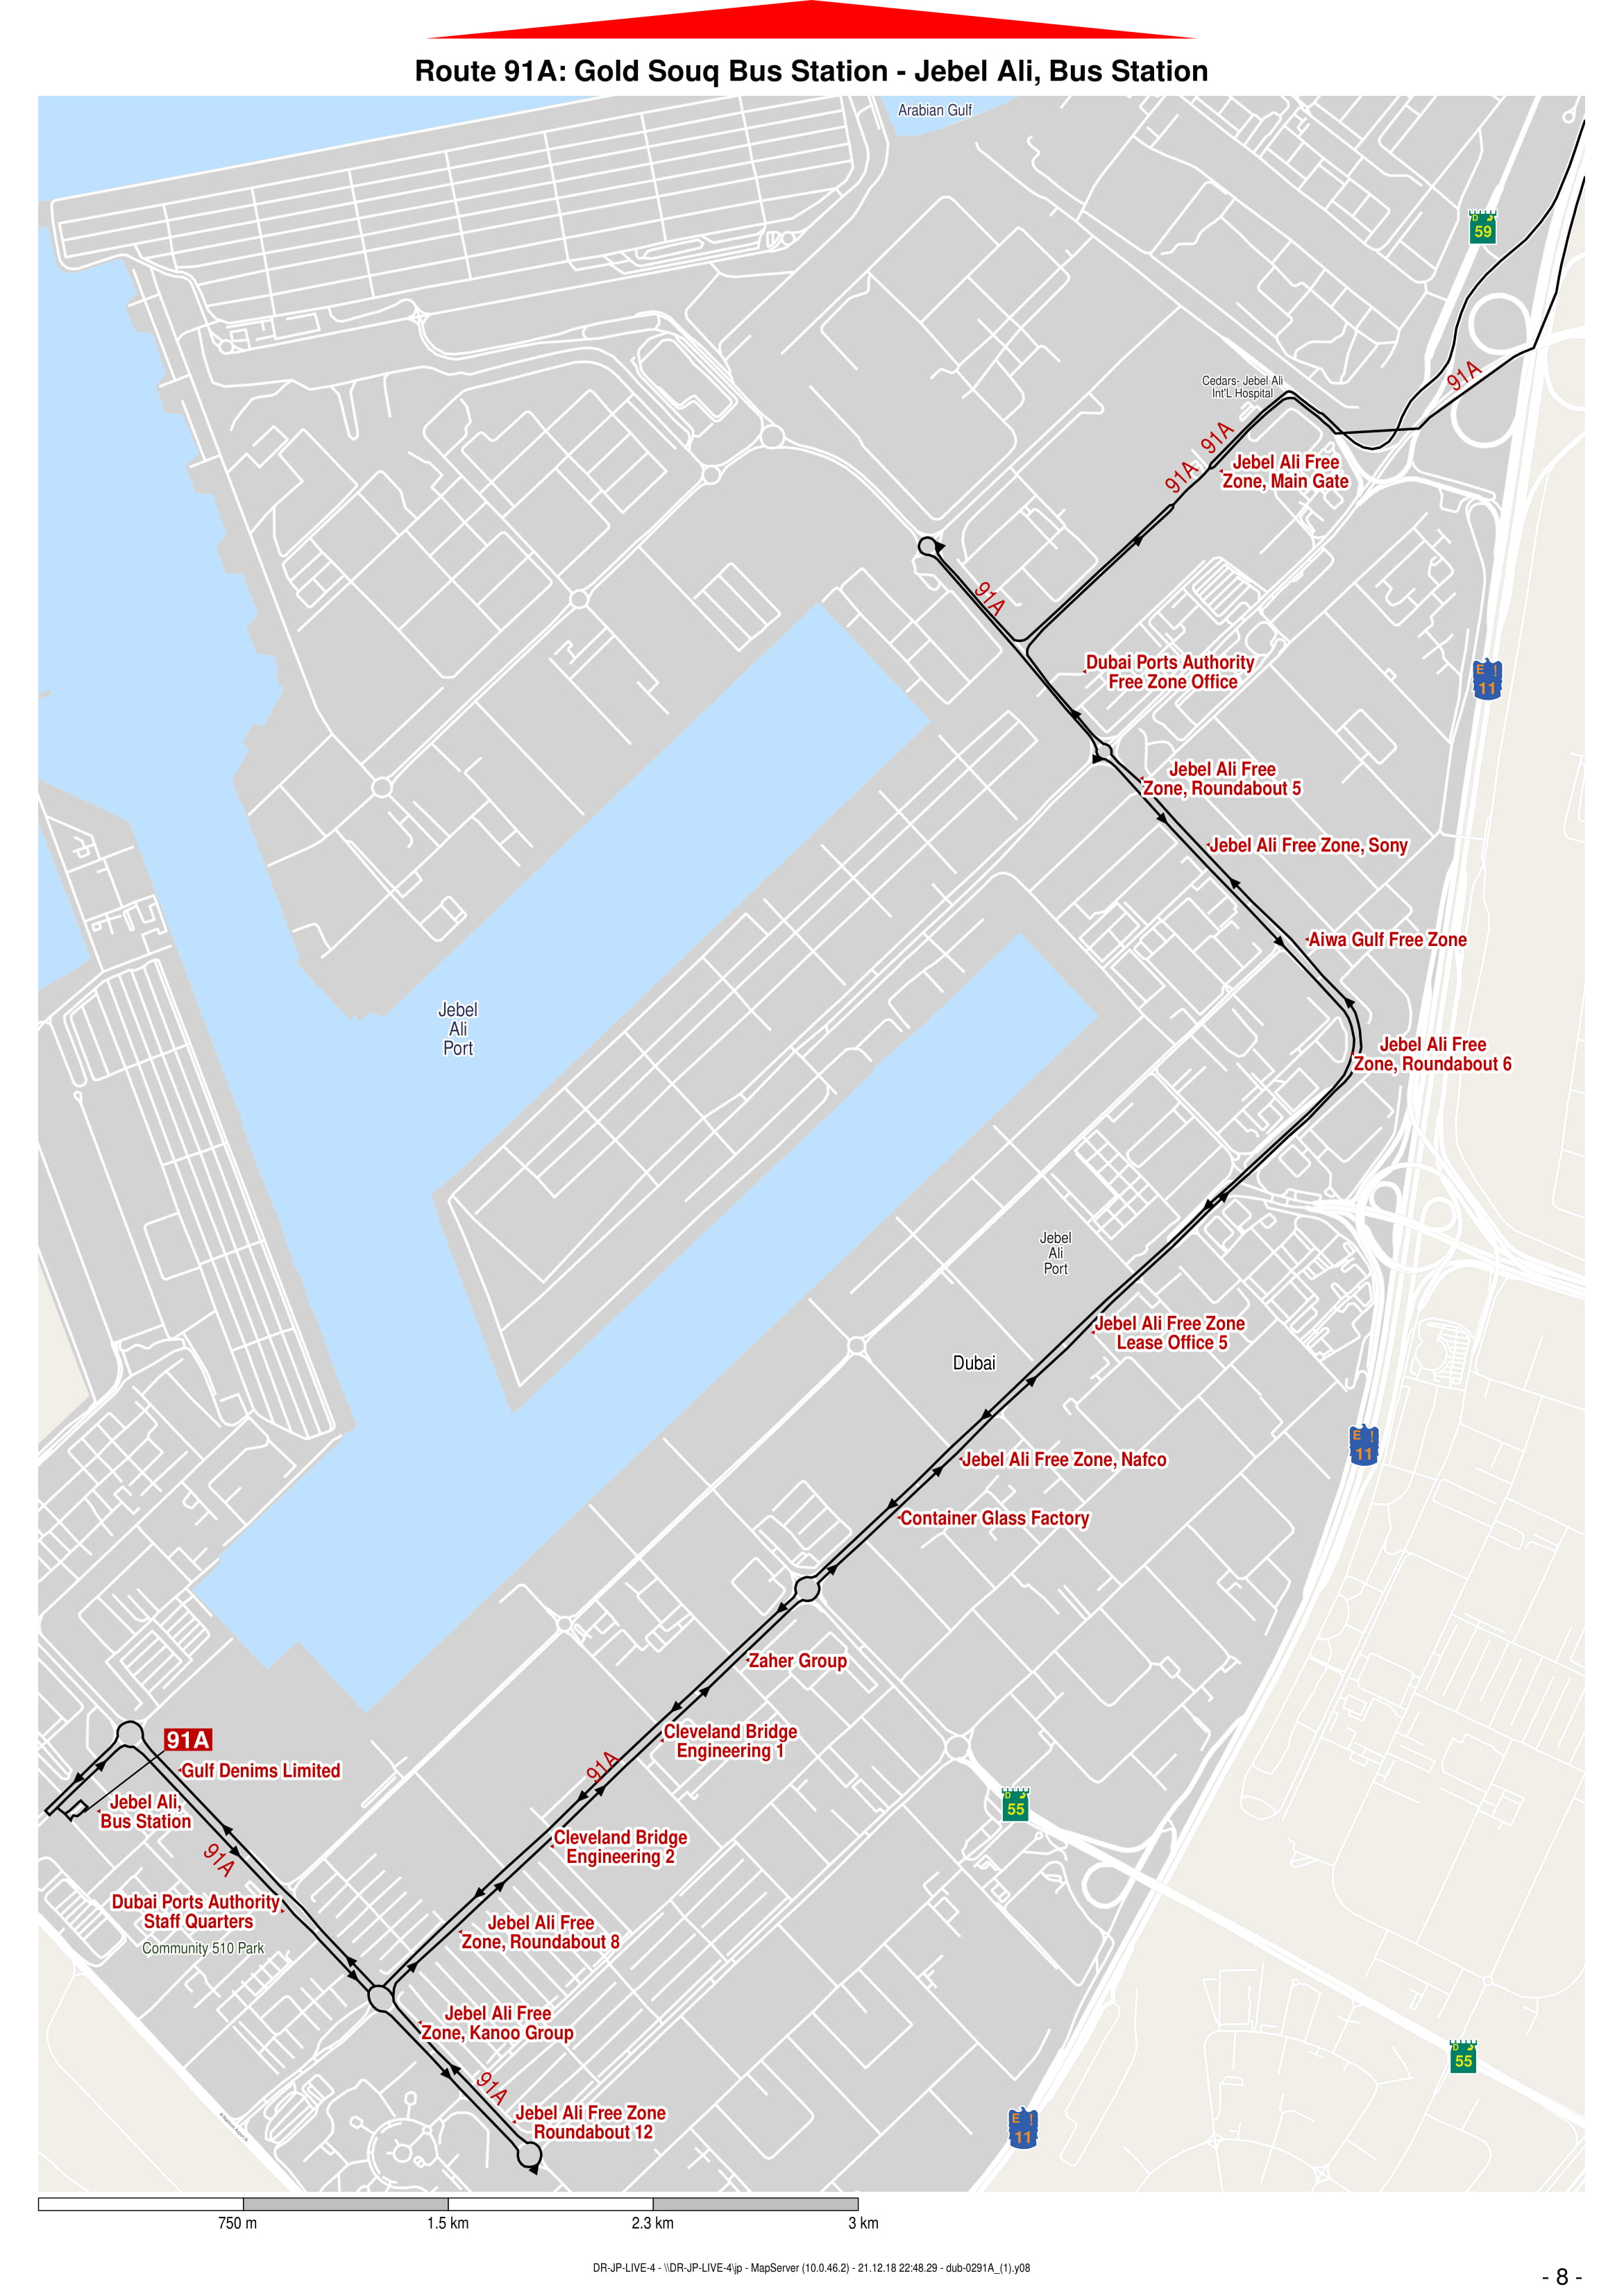 91a Bus Route In Dubai Time Schedule Stops And Maps